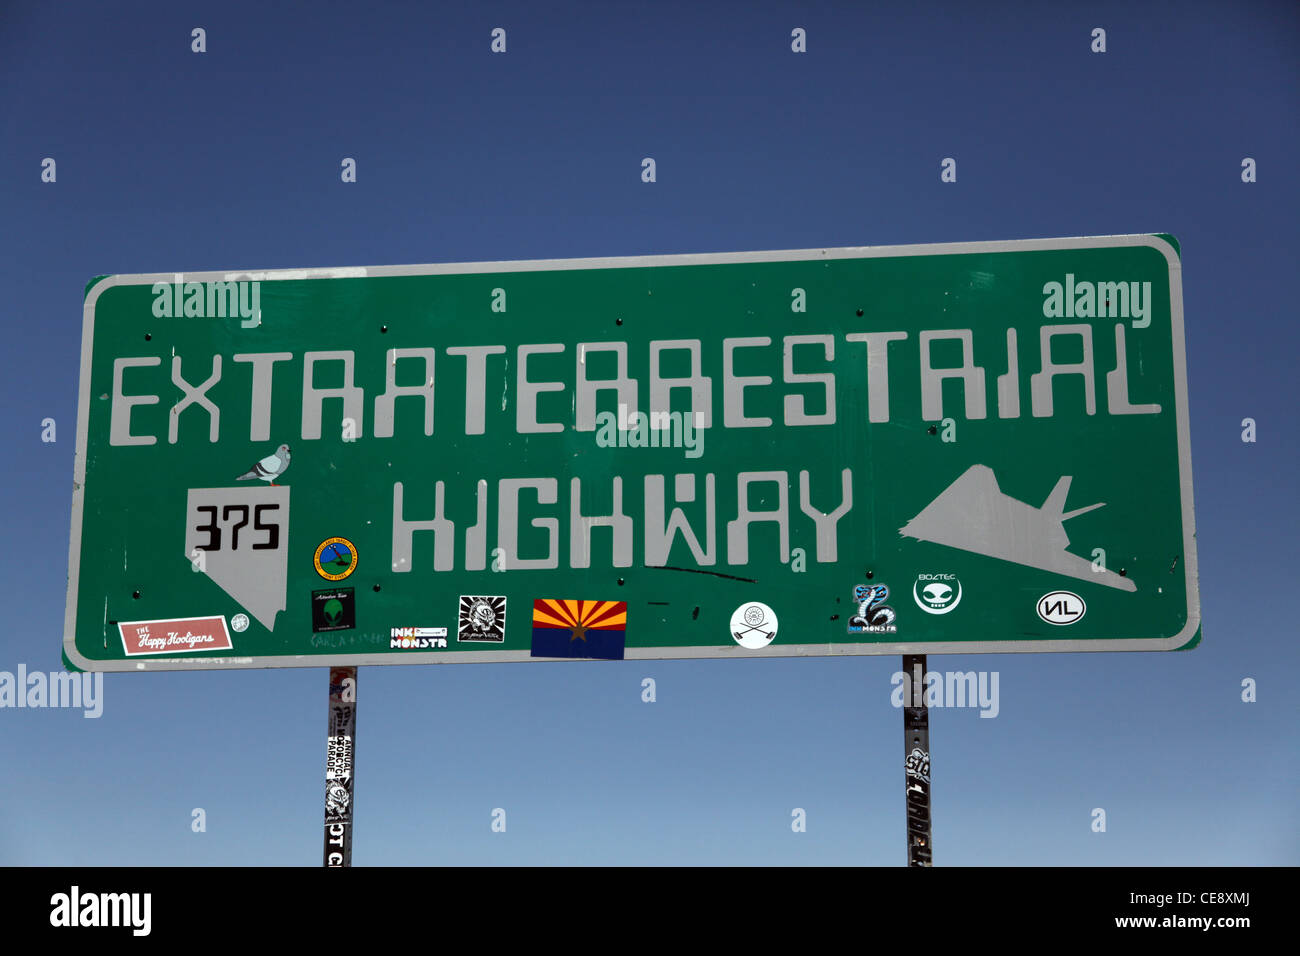 extraterrestre route 375